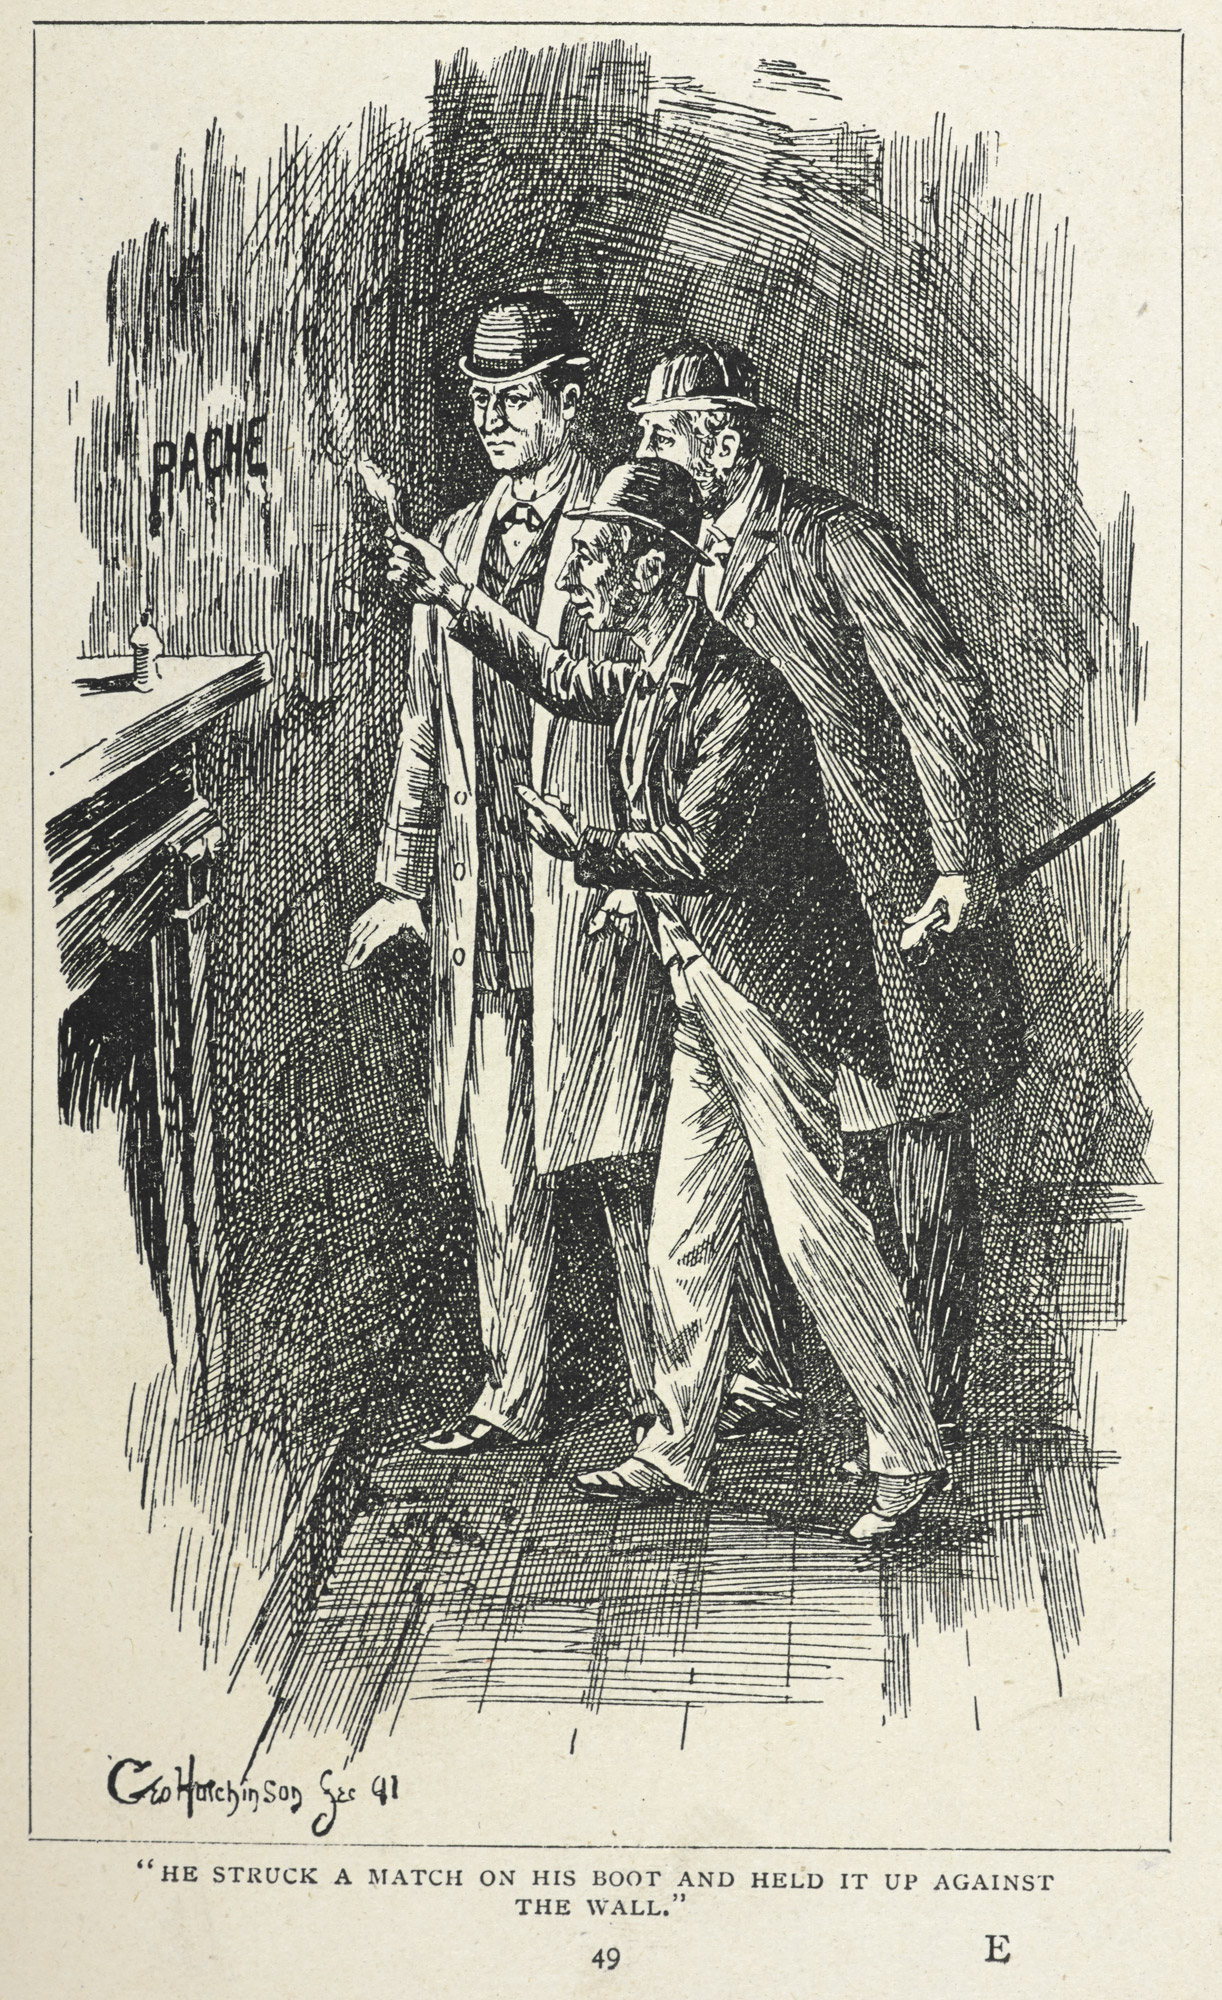 """He struck a match on his boot and held it up against the wall."" Illustration for the first story featuring the fictional detectives, Sherlock Holmes and Dr. Watson."